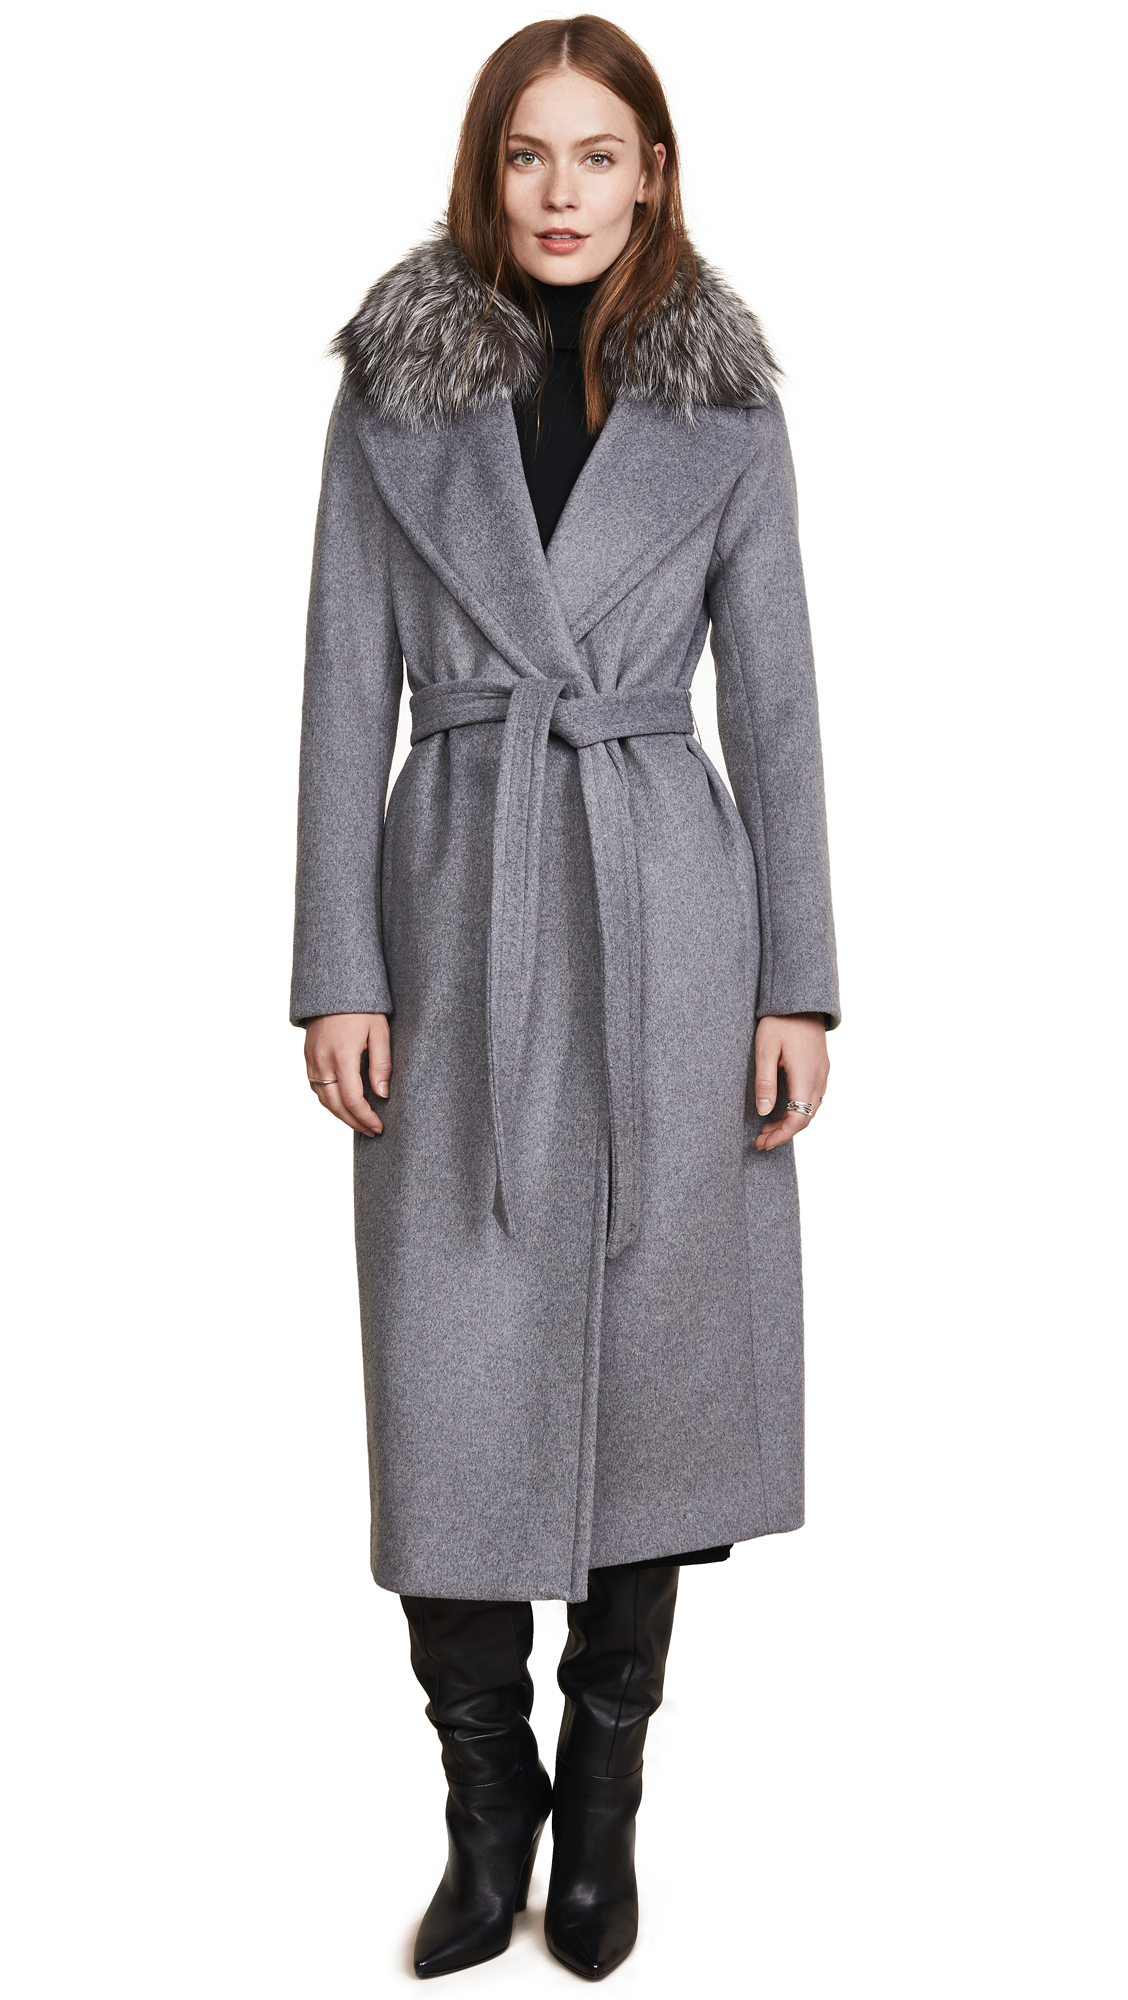 Soia & Kyo Adelaida Wool Coat with Removable Fur Trim In Ash